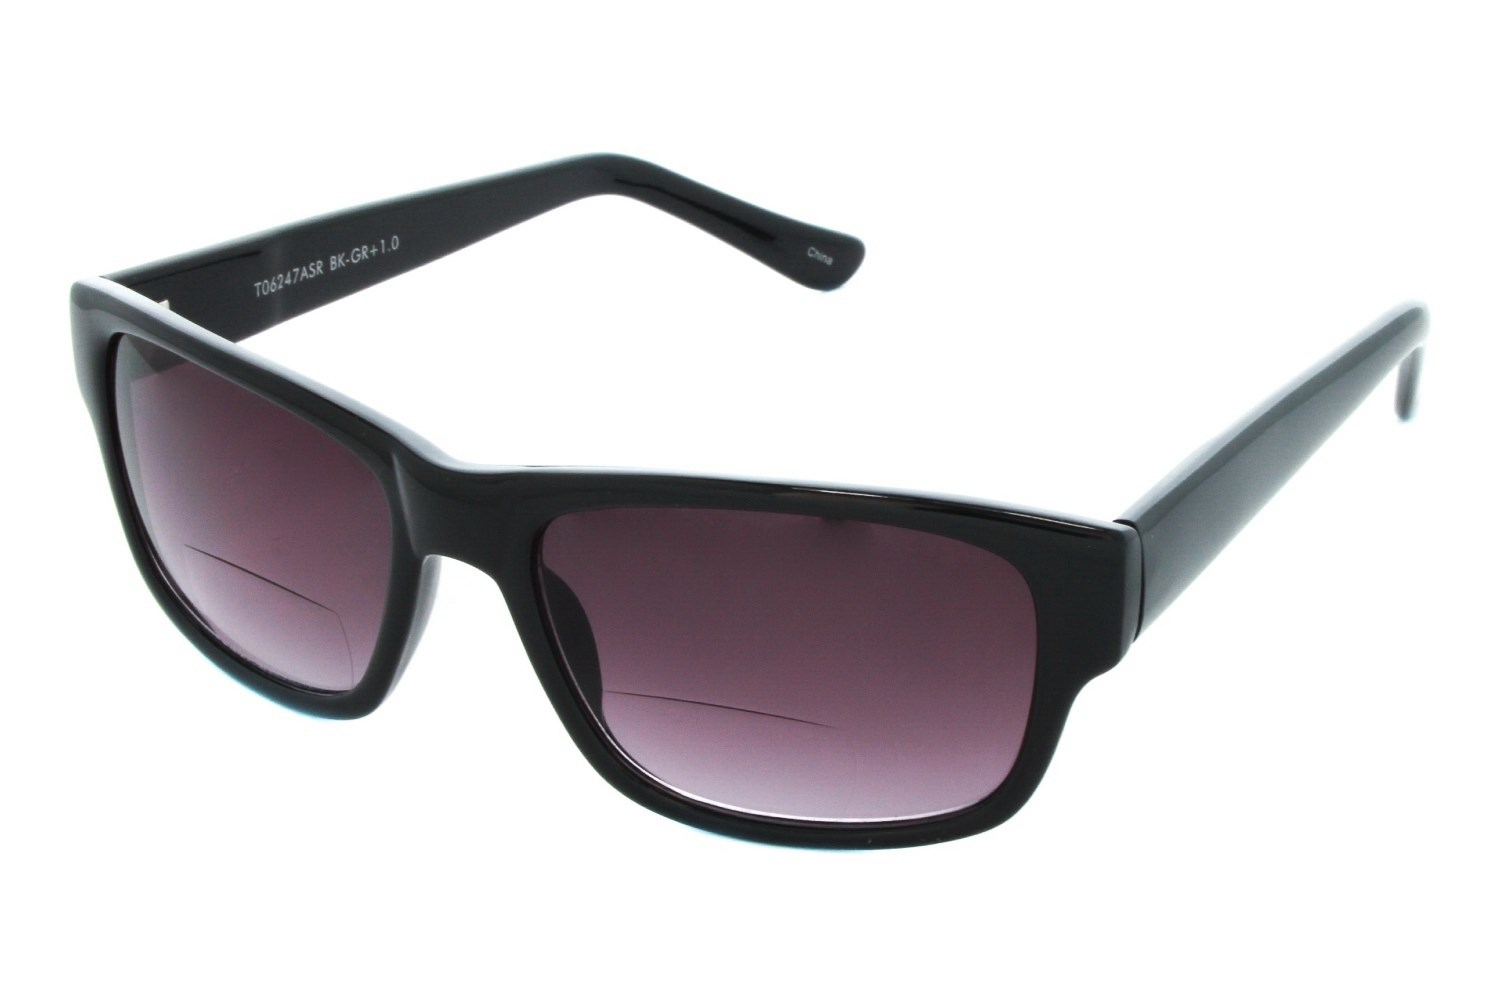 Evolutioneyes T06247 Sun Readers